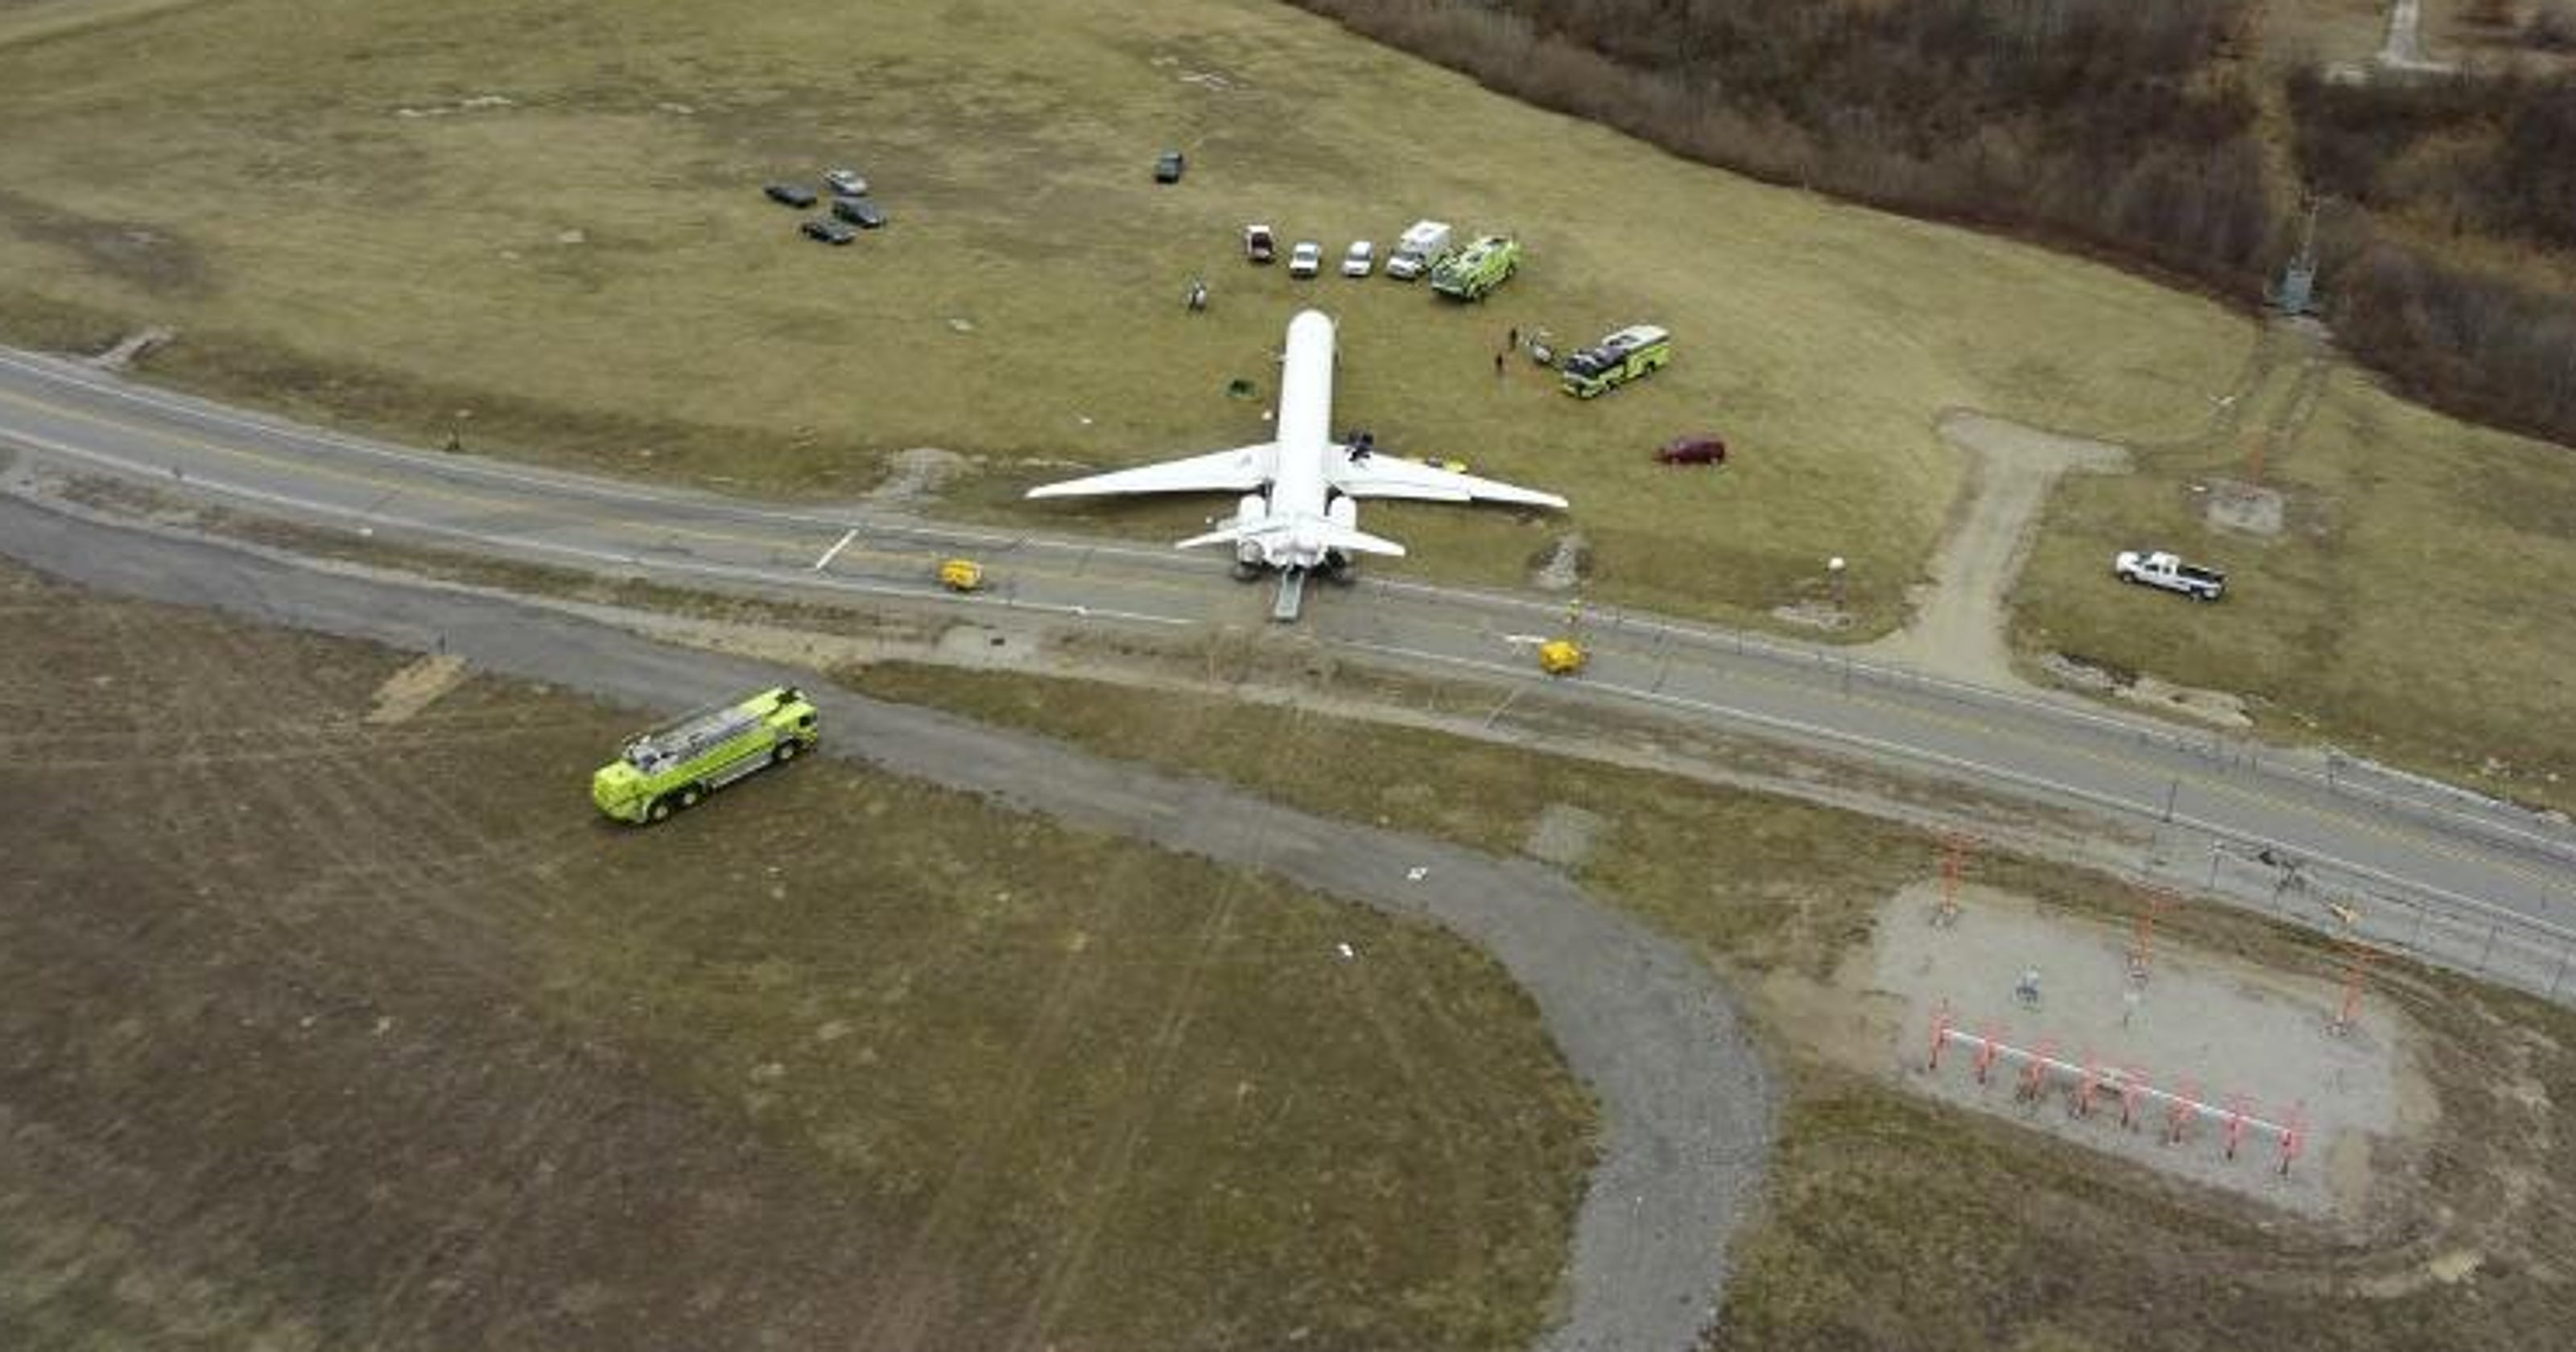 UM pilot's aborted takeoff broke rules, but saved lives